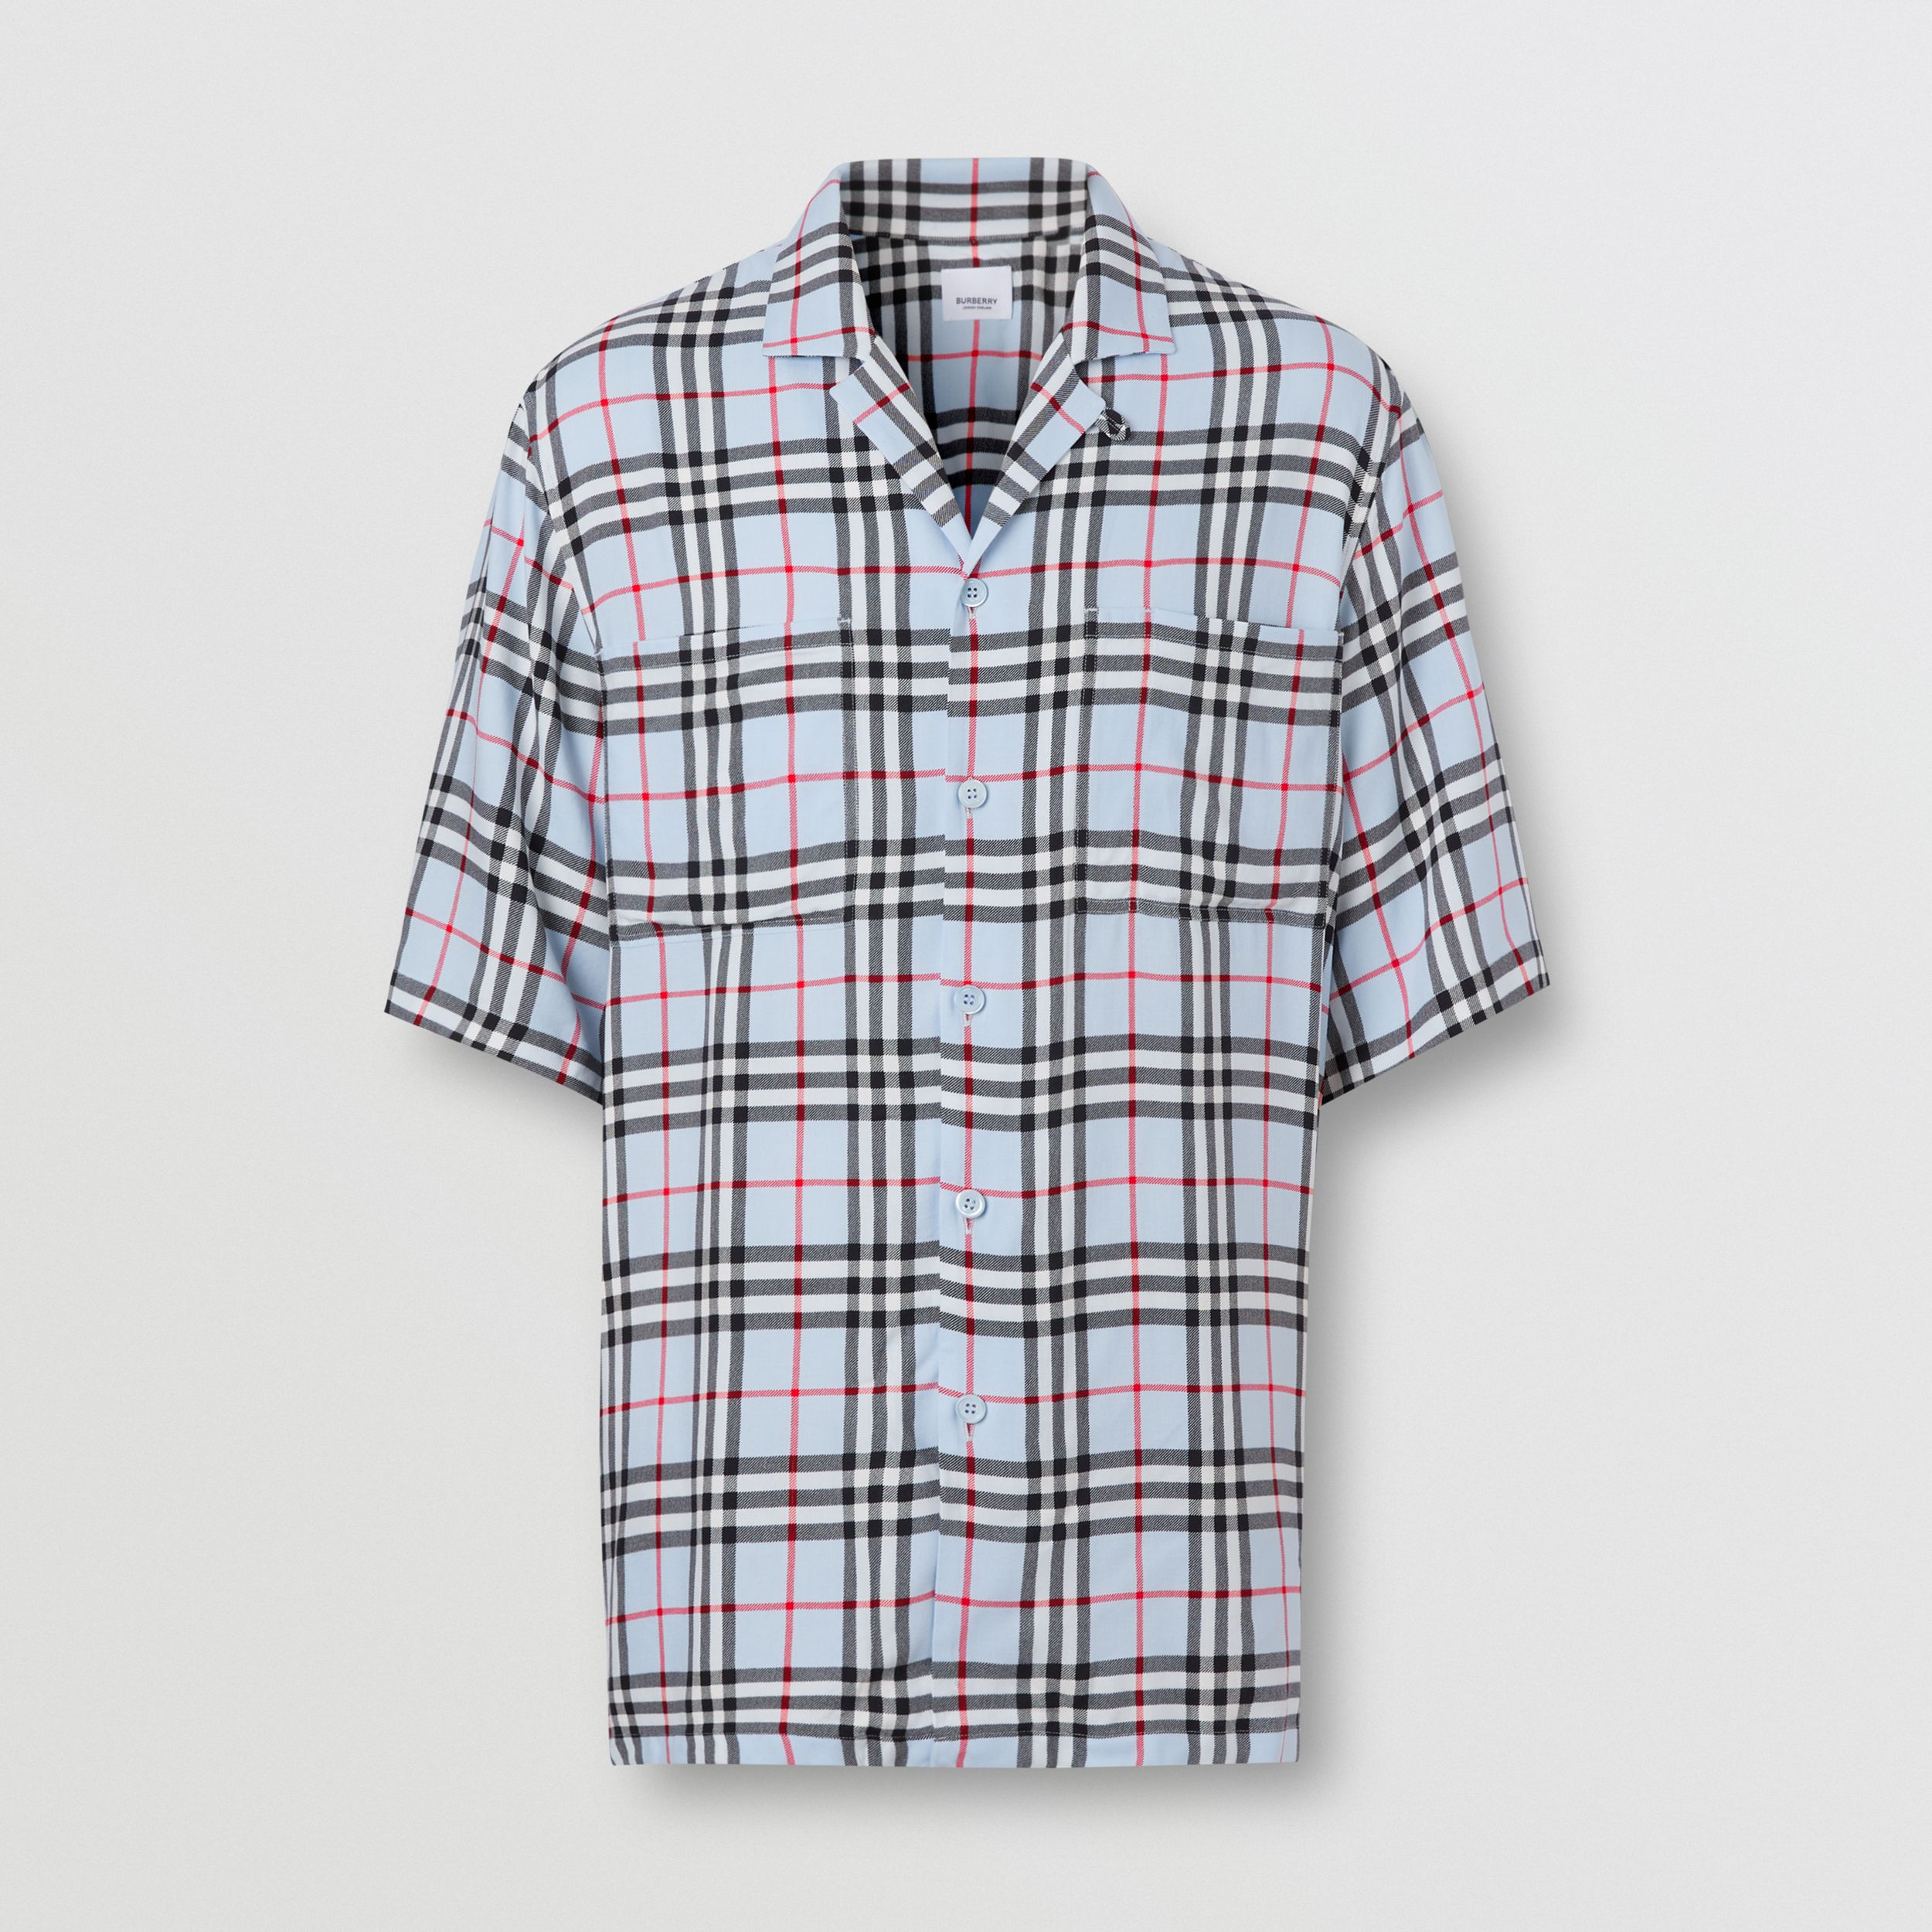 Short-sleeve Vintage Check Twill Shirt in Pale Blue - Men | Burberry Hong Kong S.A.R - 4